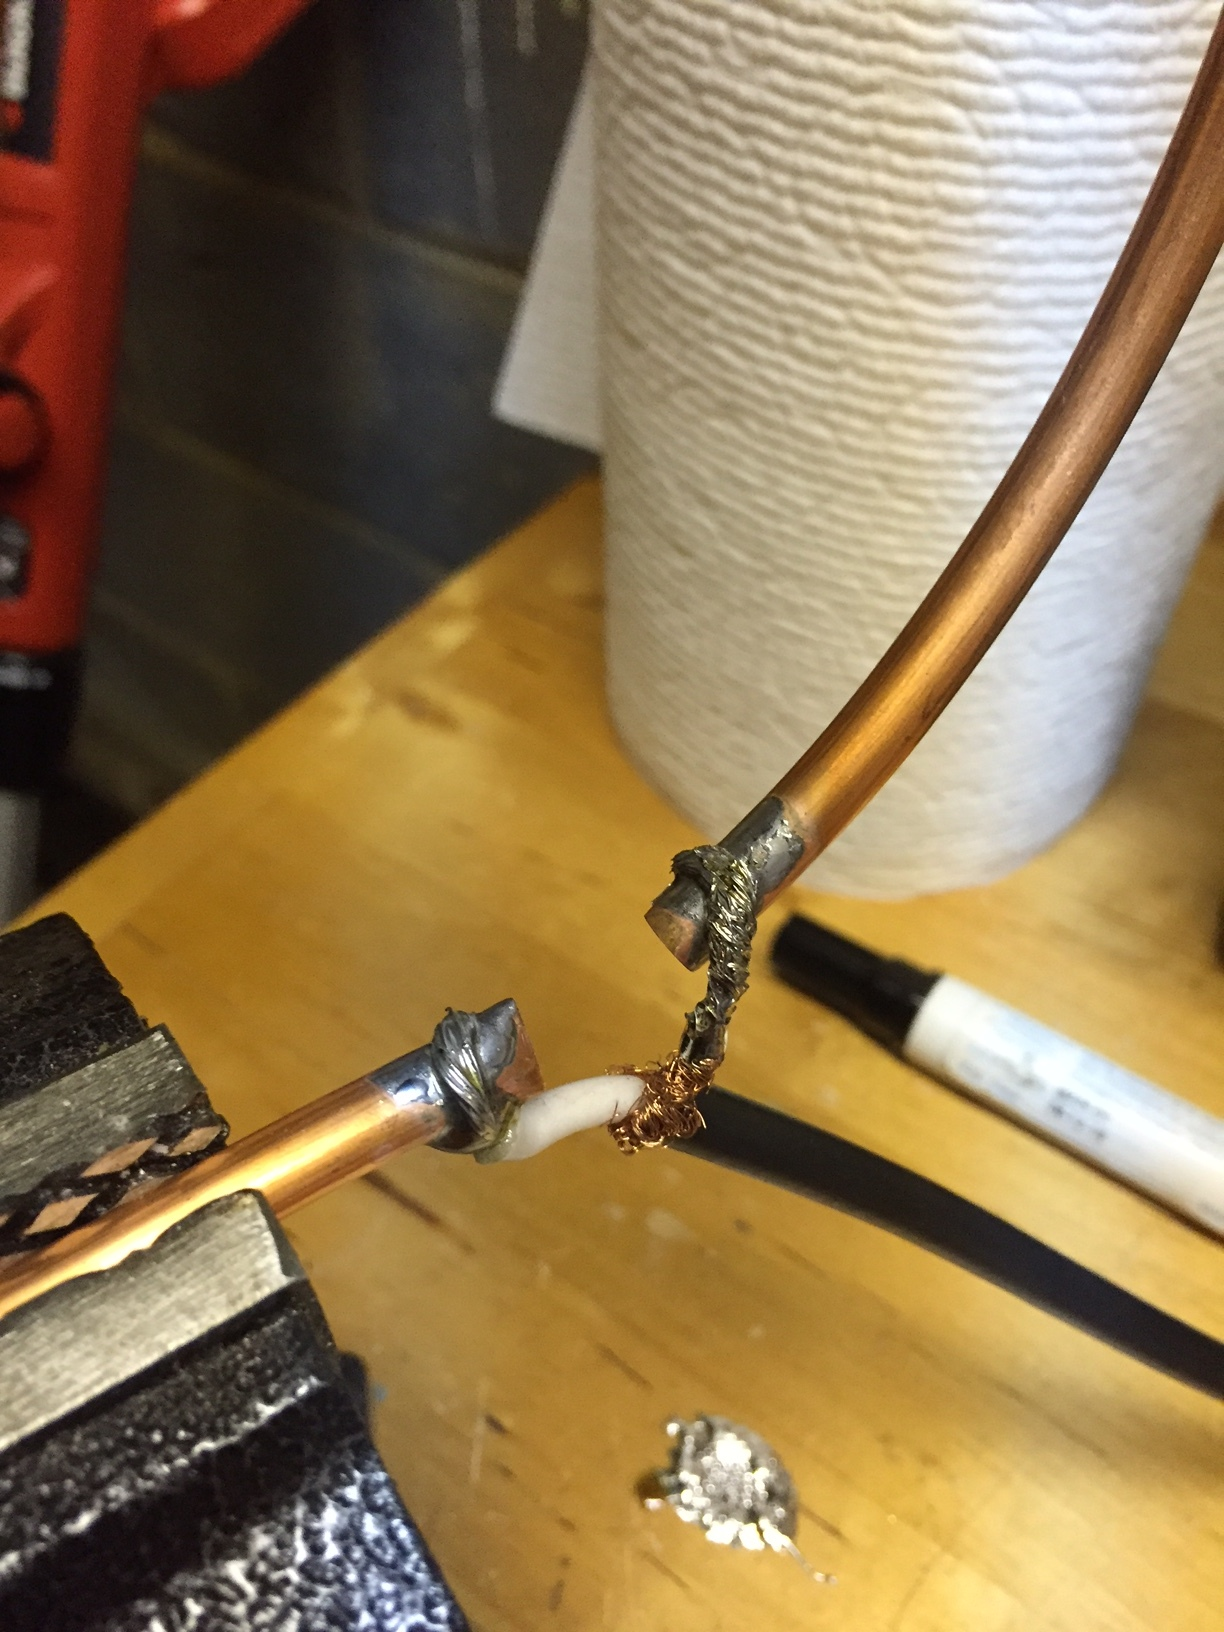 Coupling loop with RG58 conductor and shield soldered.